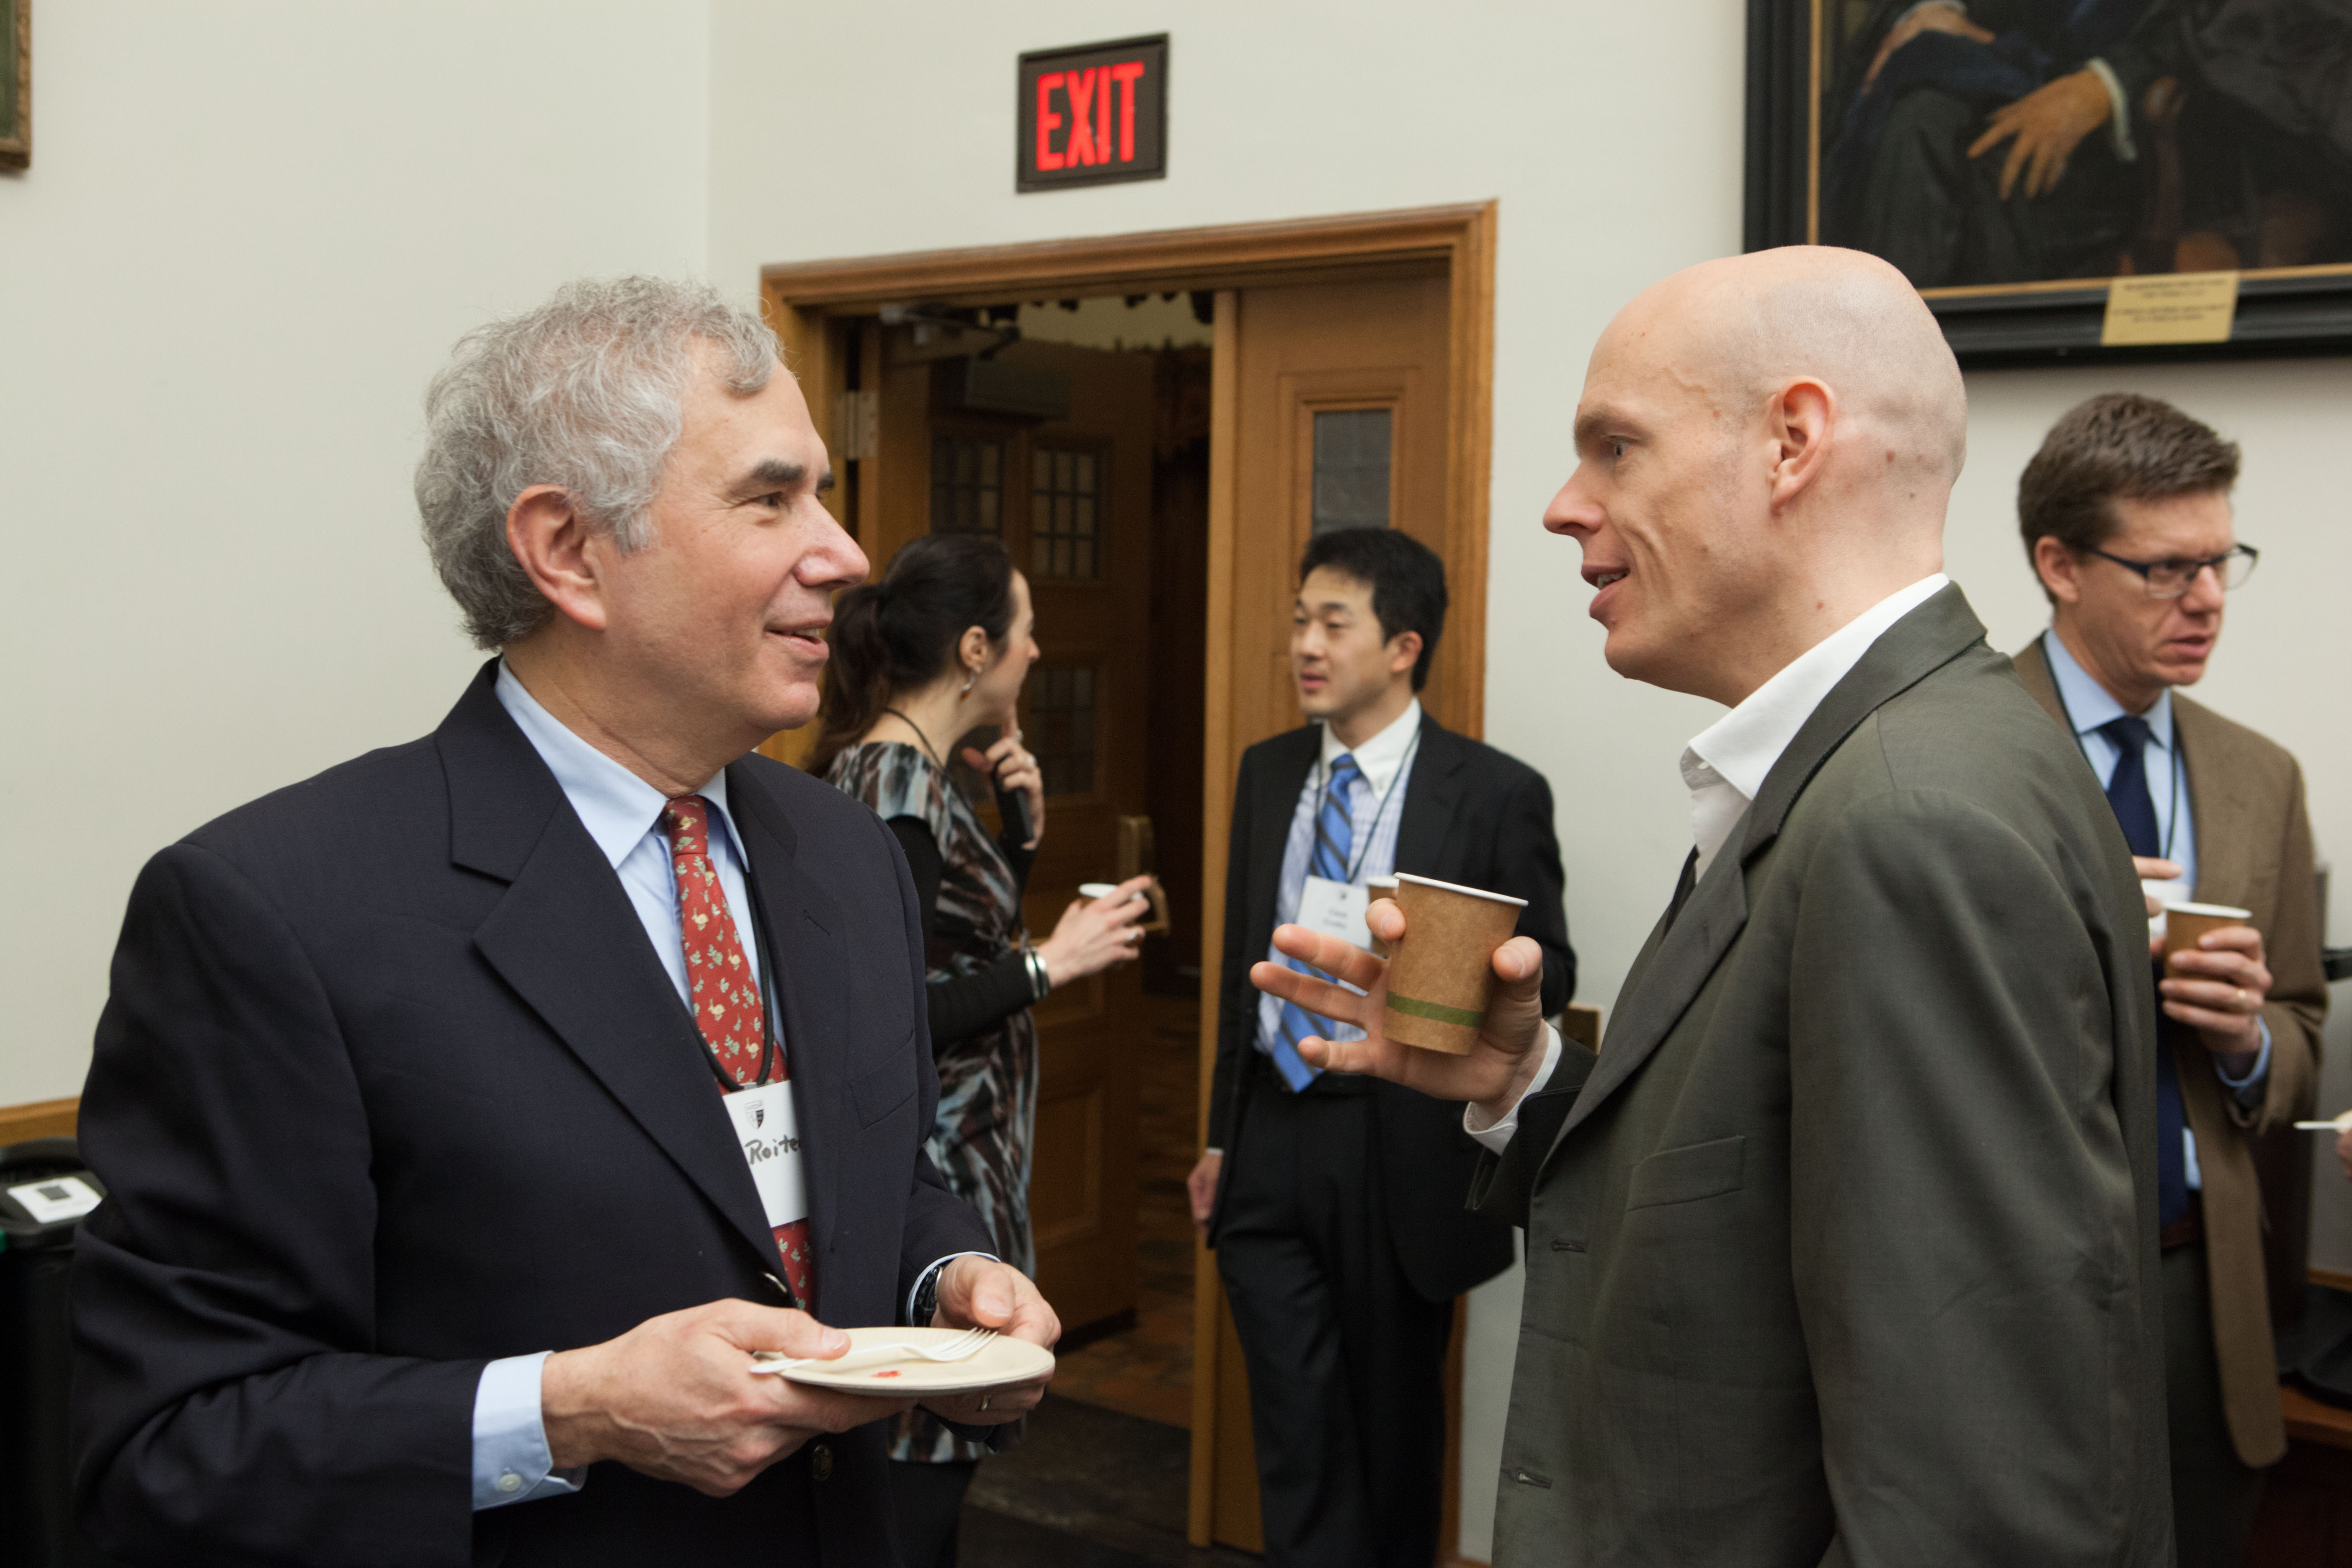 Boston U. Law Lecturer Eric Roiter and Harvard Law Prof. Holger Spamann